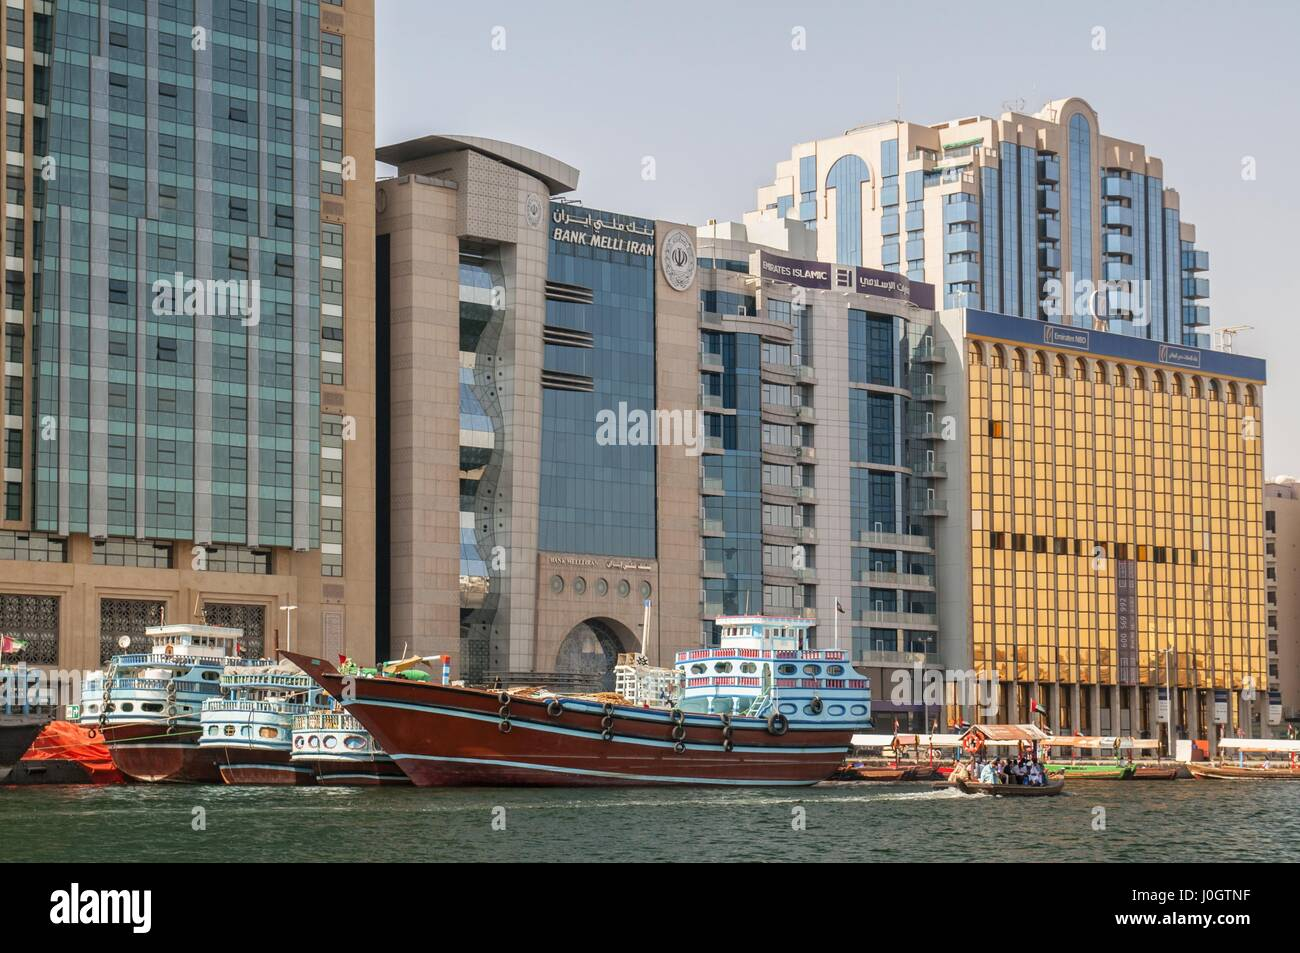 wooden office buildings. Old Wooden Dhows Moored On Dubai Creek With Modern Office Buildings In The Background, City, United Arab Emirates C